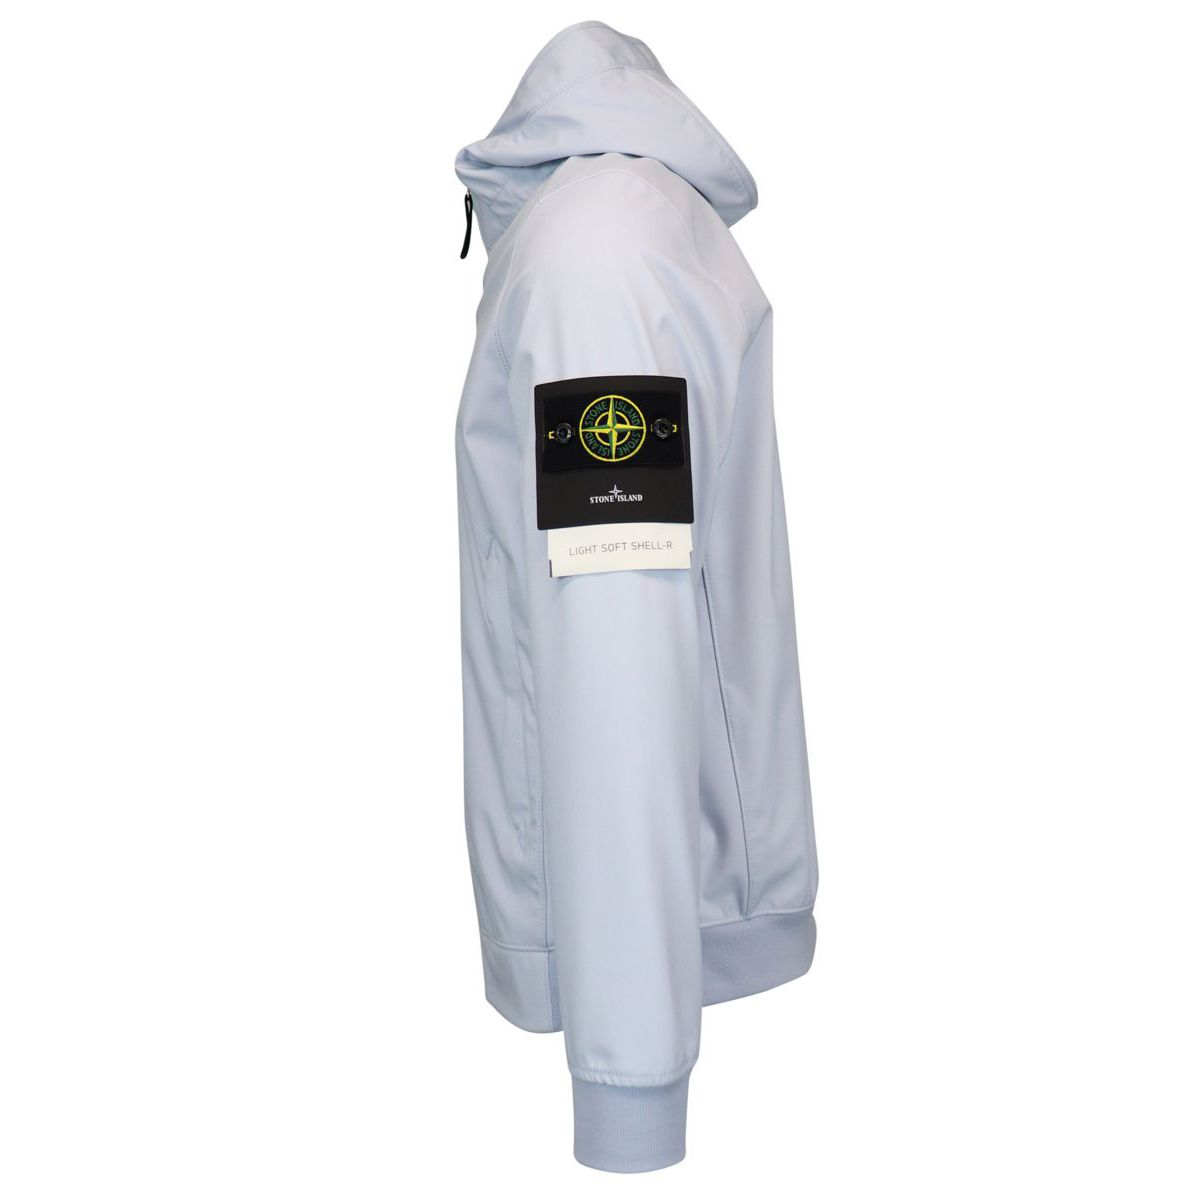 Light Soft Shell-R jacket Sky Stone Island